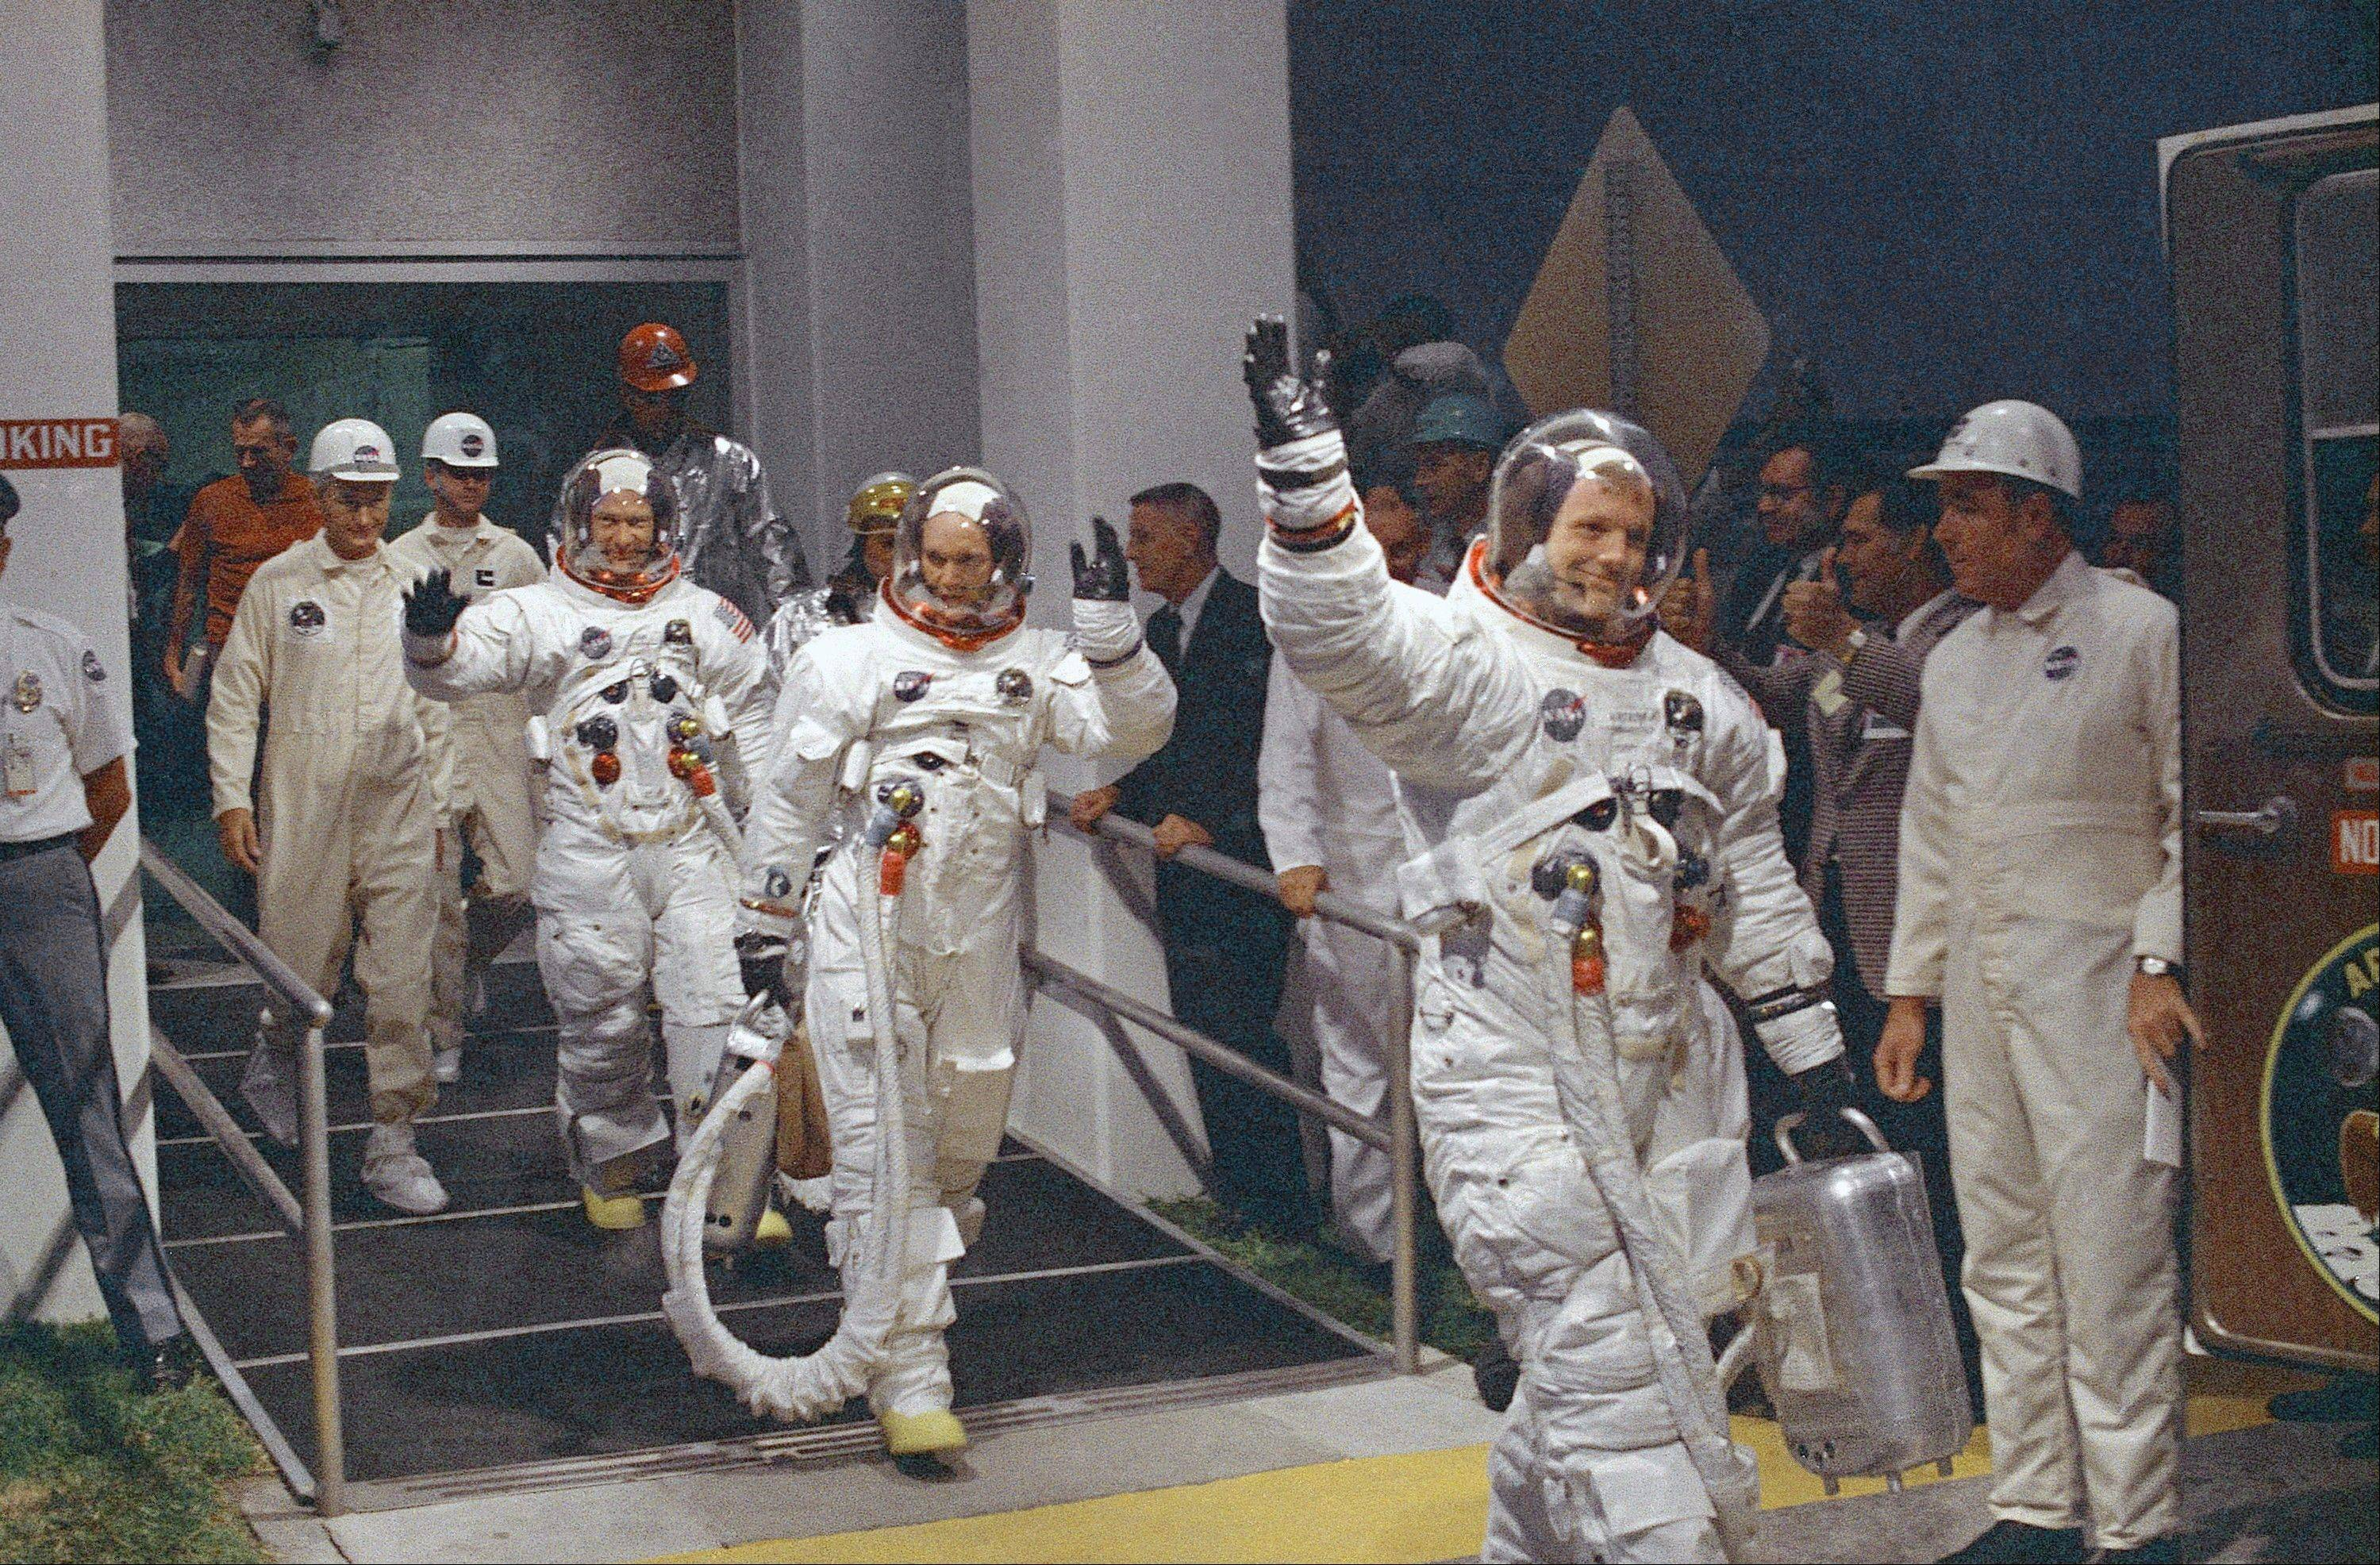 "In this July 16, 1969 file photo, Neil Armstrong waving in front, heads for the van that will take the crew to the rocket for launch to the moon at Kennedy Space Center in Merritt Island, Florida. The family of Neil Armstrong, the first man to walk on the moon, says he has died at age 82. A statement from the family says he died following complications resulting from cardiovascular procedures. It doesn't say where he died. Armstrong commanded the Apollo 11 spacecraft that landed on the moon July 20, 1969. He radioed back to Earth the historic news of ""one giant leap for mankind."" Armstrong and fellow astronaut Edwin ""Buzz"" Aldrin spent nearly three hours walking on the moon, collecting samples, conducting experiments and taking photographs. In all, 12 Americans walked on the moon from 1969 to 1972."